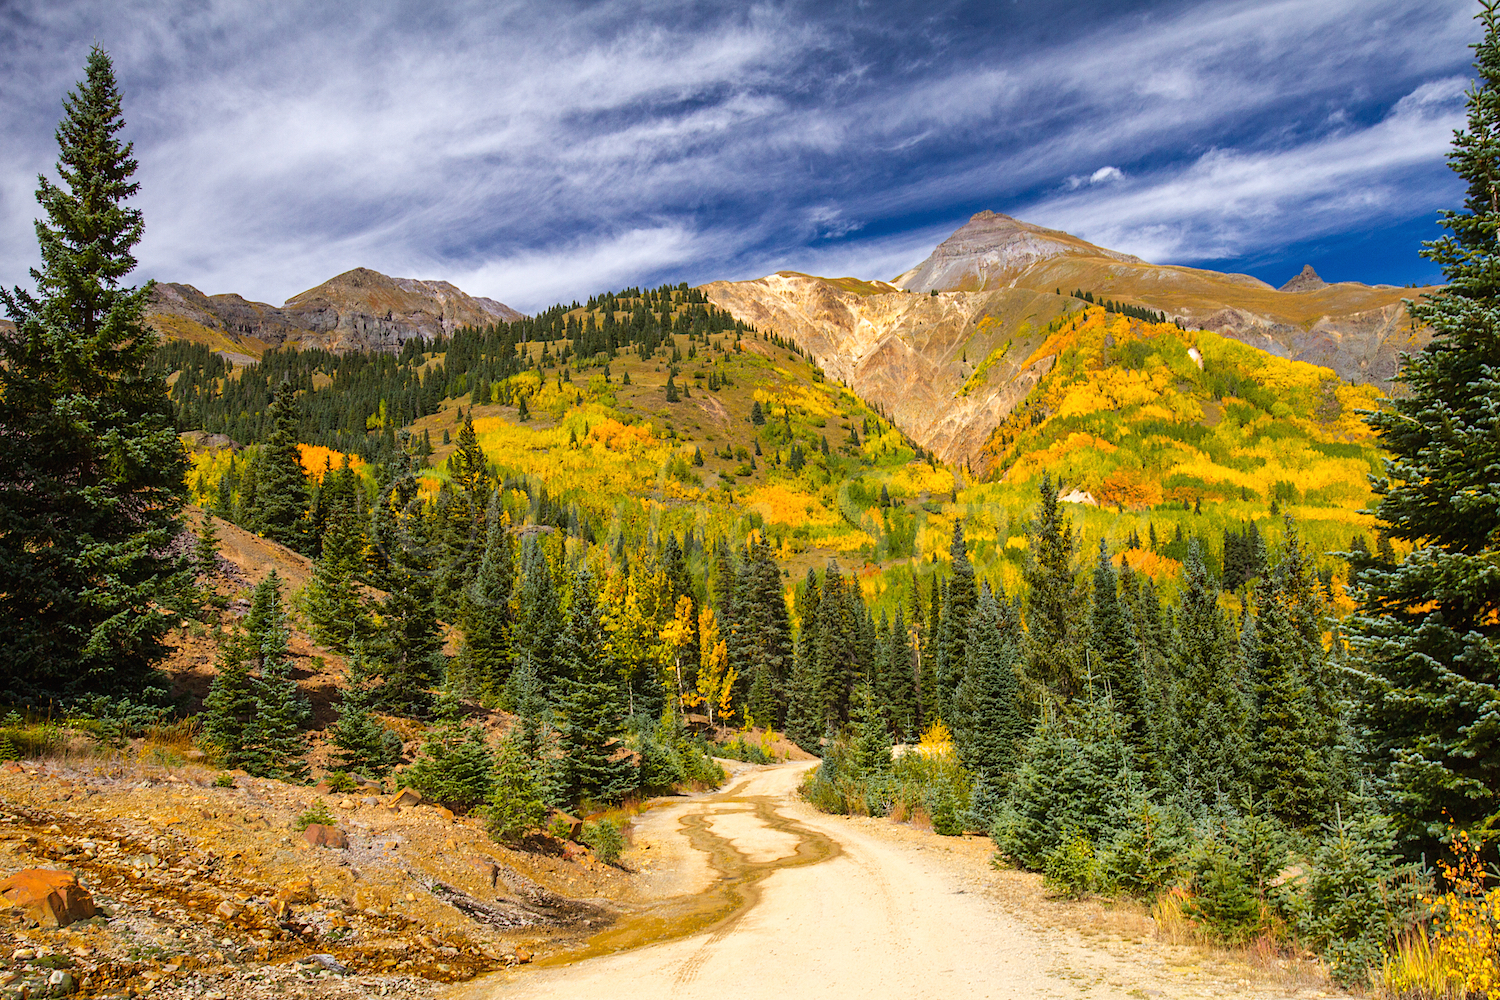 Red Mountain Fall Color, Image #9113